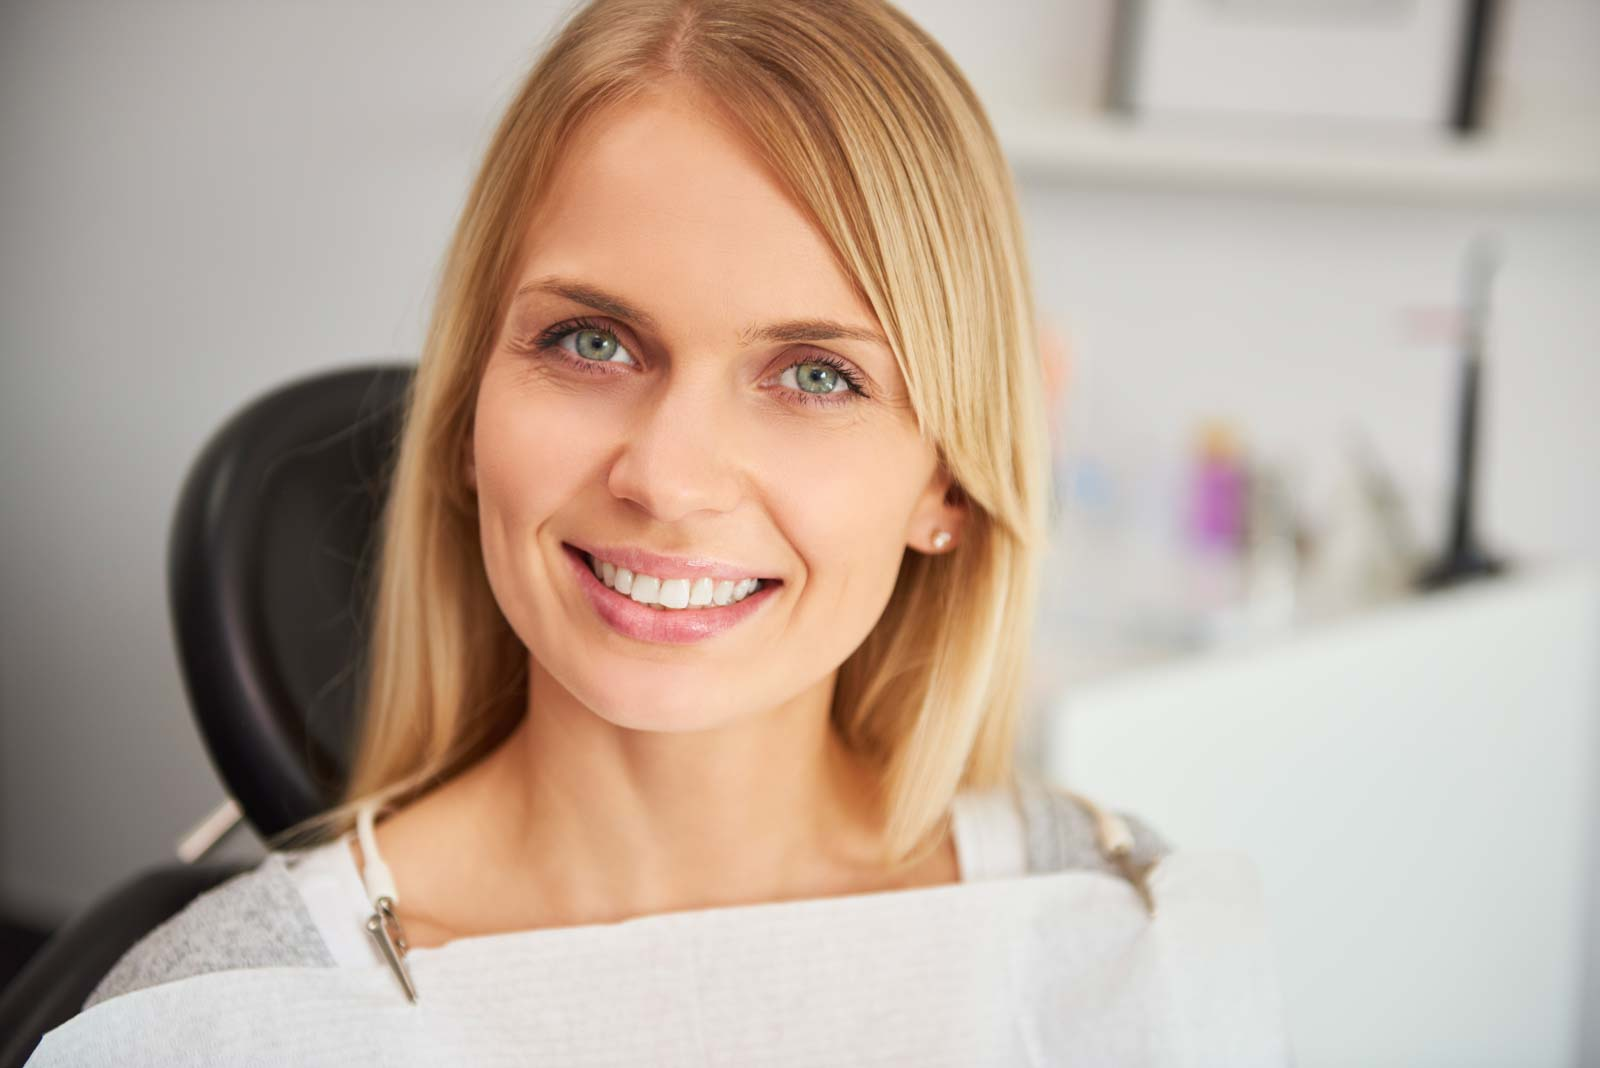 Dental implants are a permanent solution for those with tooth loss in Folsom, CA